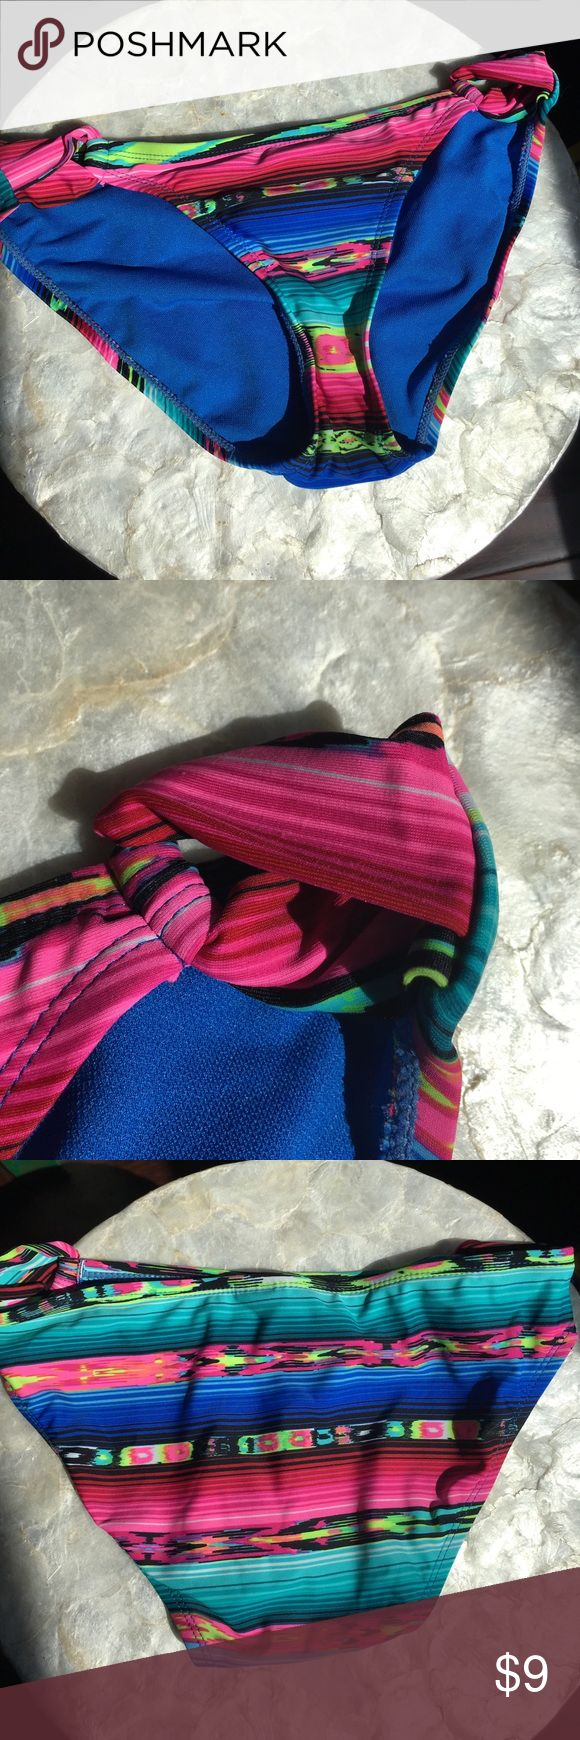 Swimsuit bikini bottoms. Size Small   Aztec print Trendy. Right Aztec bikini bottoms available.  Size Small.   Little if any wear---they are from a friend so I don't know for sure if they have been worn but I can't find any signs of wear.  Mismatched suits are super popular this year.      Great for bundling! Swim Bikinis